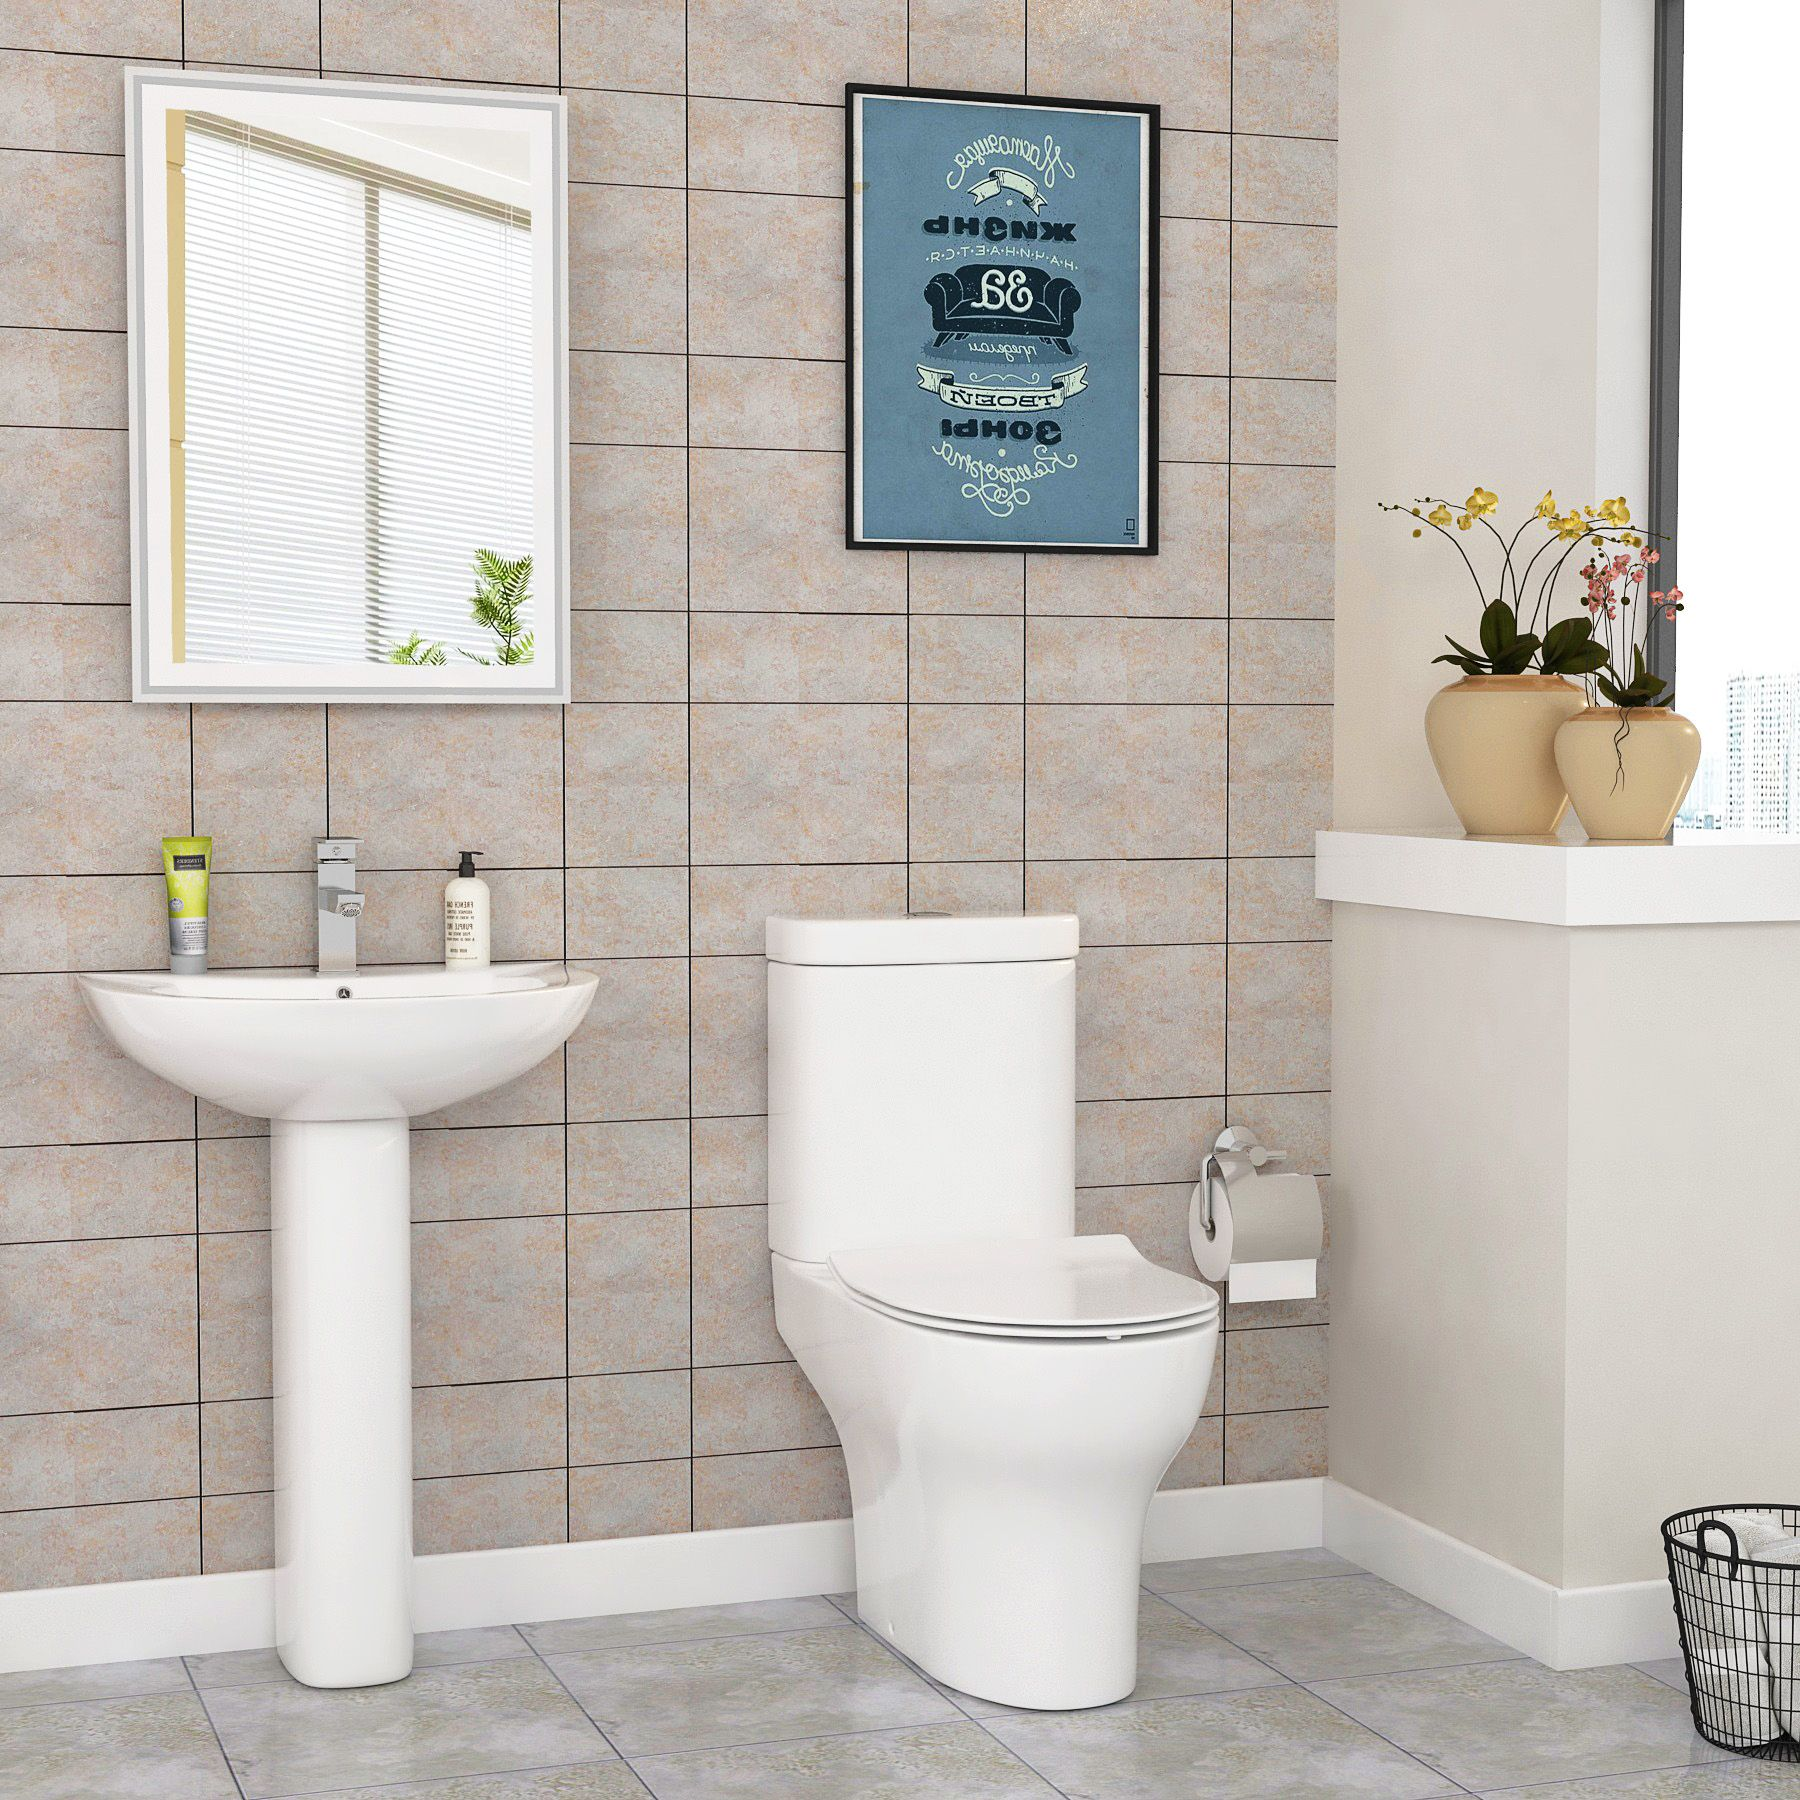 Determine the best Toilets and Basins for suites